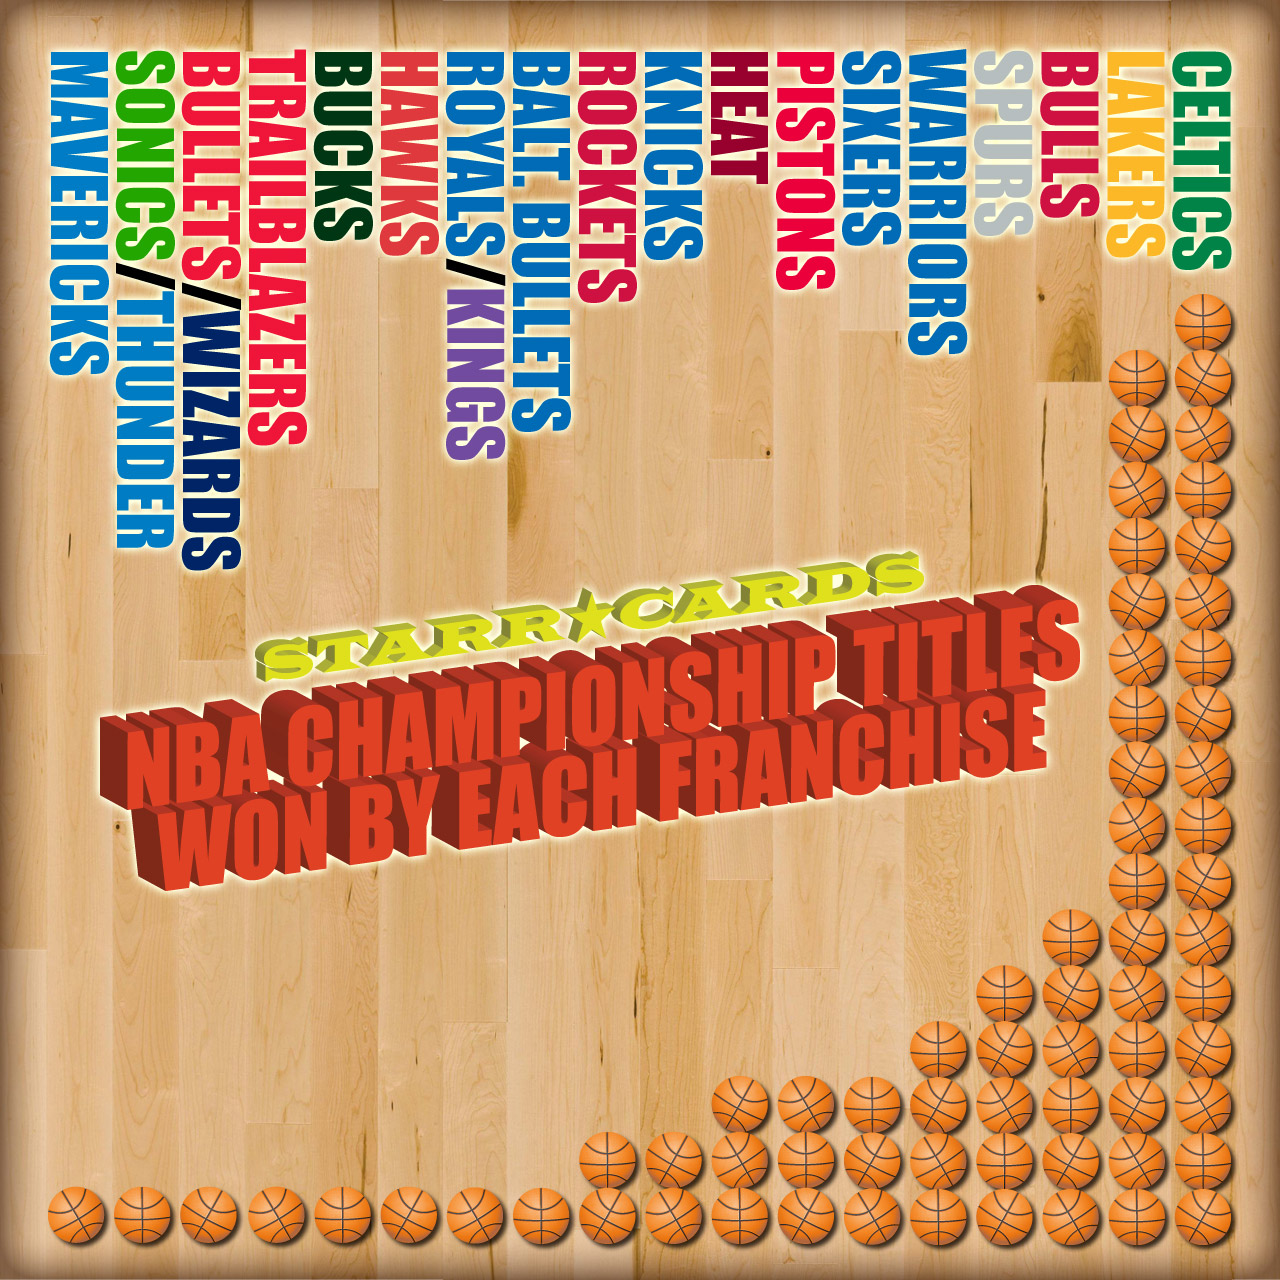 Starr Cards chart showing NBA Championship Titles Won by Each Franchise